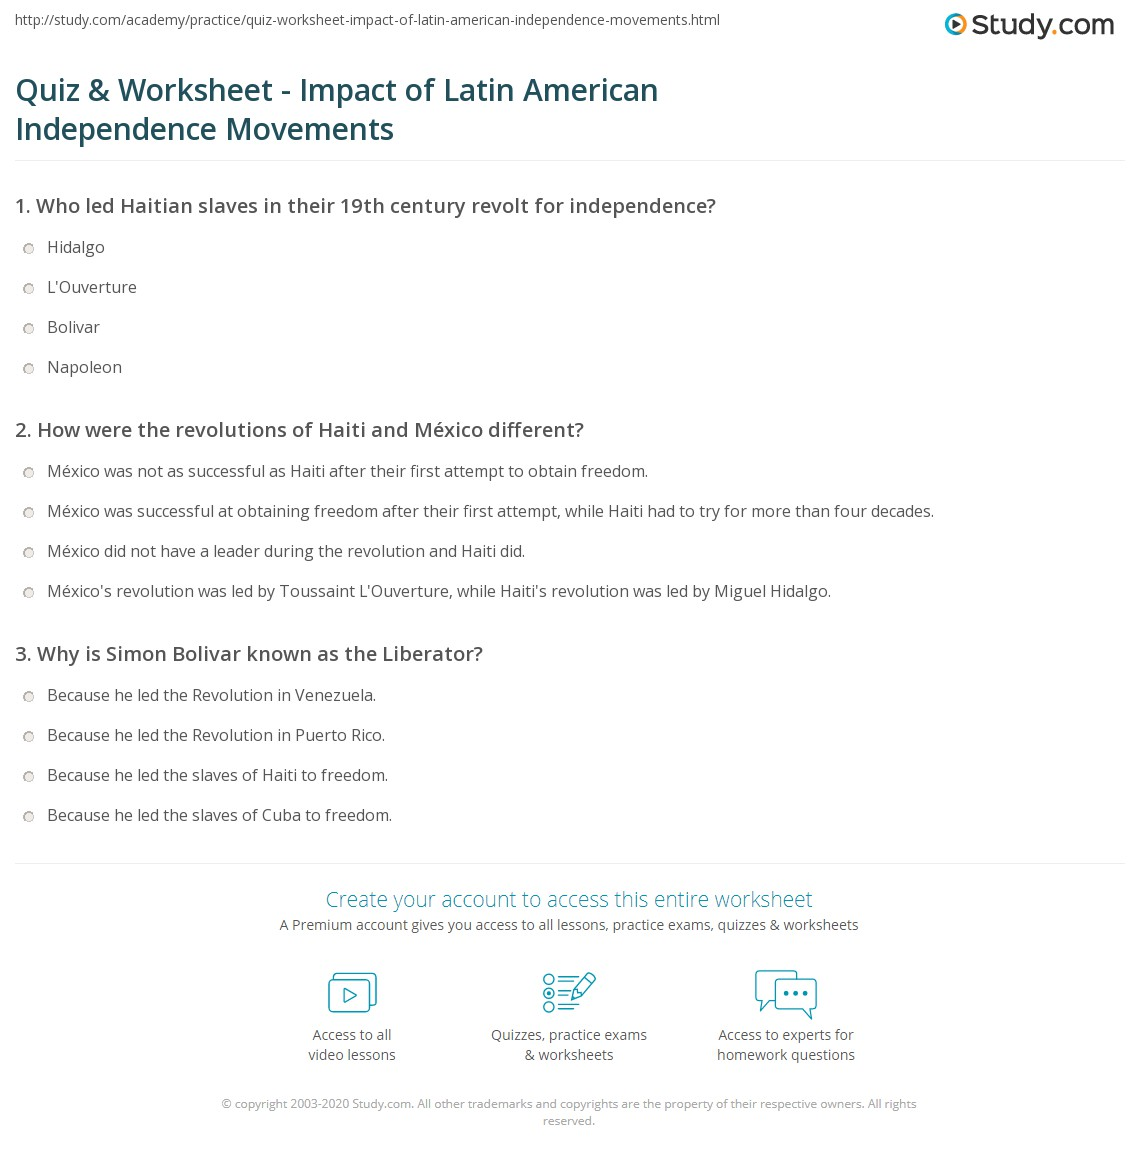 Aldiablosus  Outstanding Quiz Amp Worksheet  Impact Of Latin American Independence Movements  With Lovely Print Independence Movements In Latin America Examples Amp Impact Worksheet With Astounding Word Problems With Fractions Worksheets Also Compositions Of Transformations Worksheet In Addition Verb Worksheets St Grade And Single Step Equations Worksheet As Well As Greek Gods Worksheet Additionally Winter Worksheets For Kindergarten From Studycom With Aldiablosus  Lovely Quiz Amp Worksheet  Impact Of Latin American Independence Movements  With Astounding Print Independence Movements In Latin America Examples Amp Impact Worksheet And Outstanding Word Problems With Fractions Worksheets Also Compositions Of Transformations Worksheet In Addition Verb Worksheets St Grade From Studycom